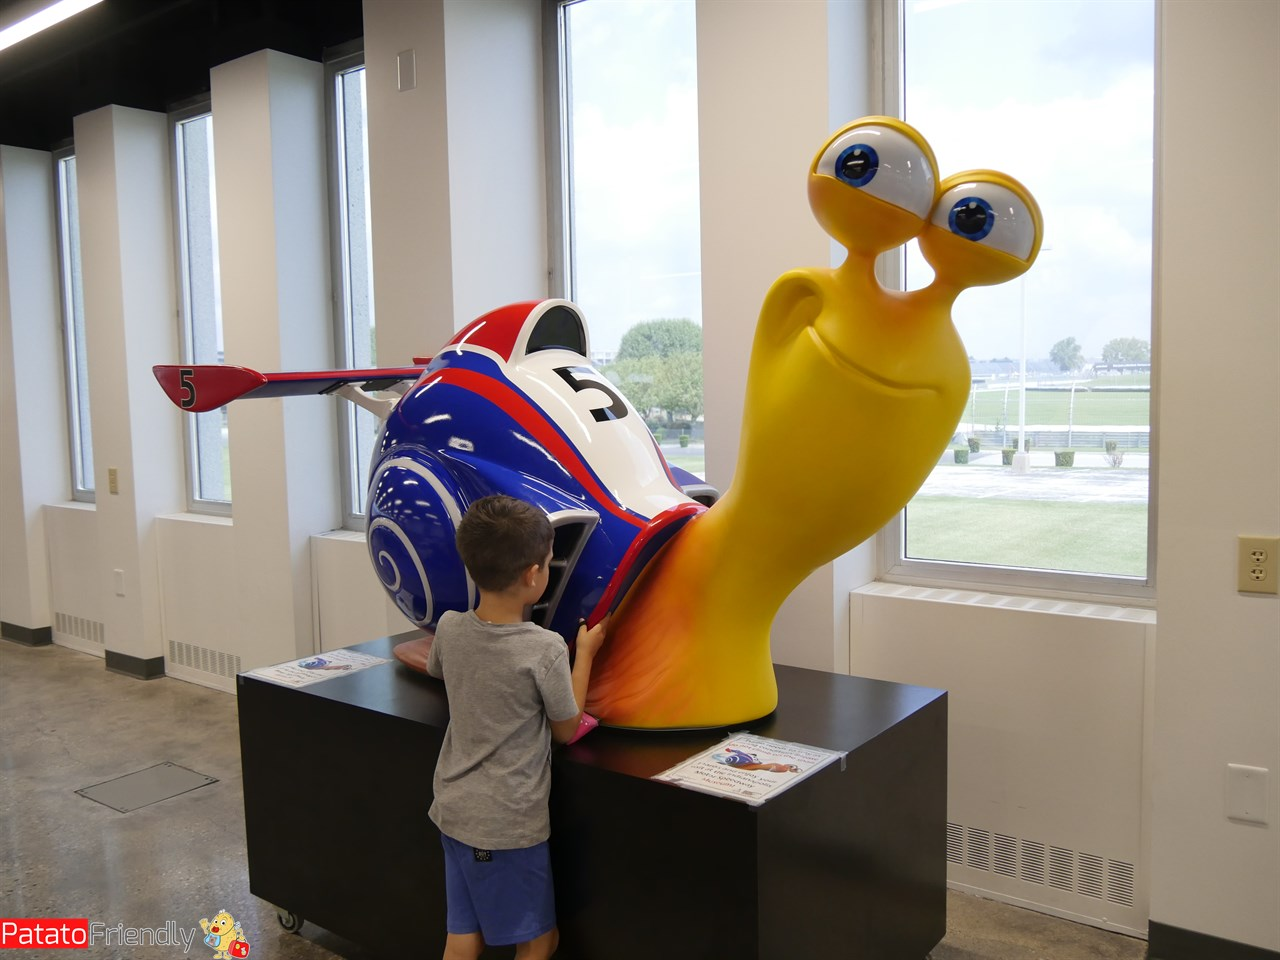 [cml_media_alt id='11707']Indianapolis coi bambini - museo del IMS[/cml_media_alt]